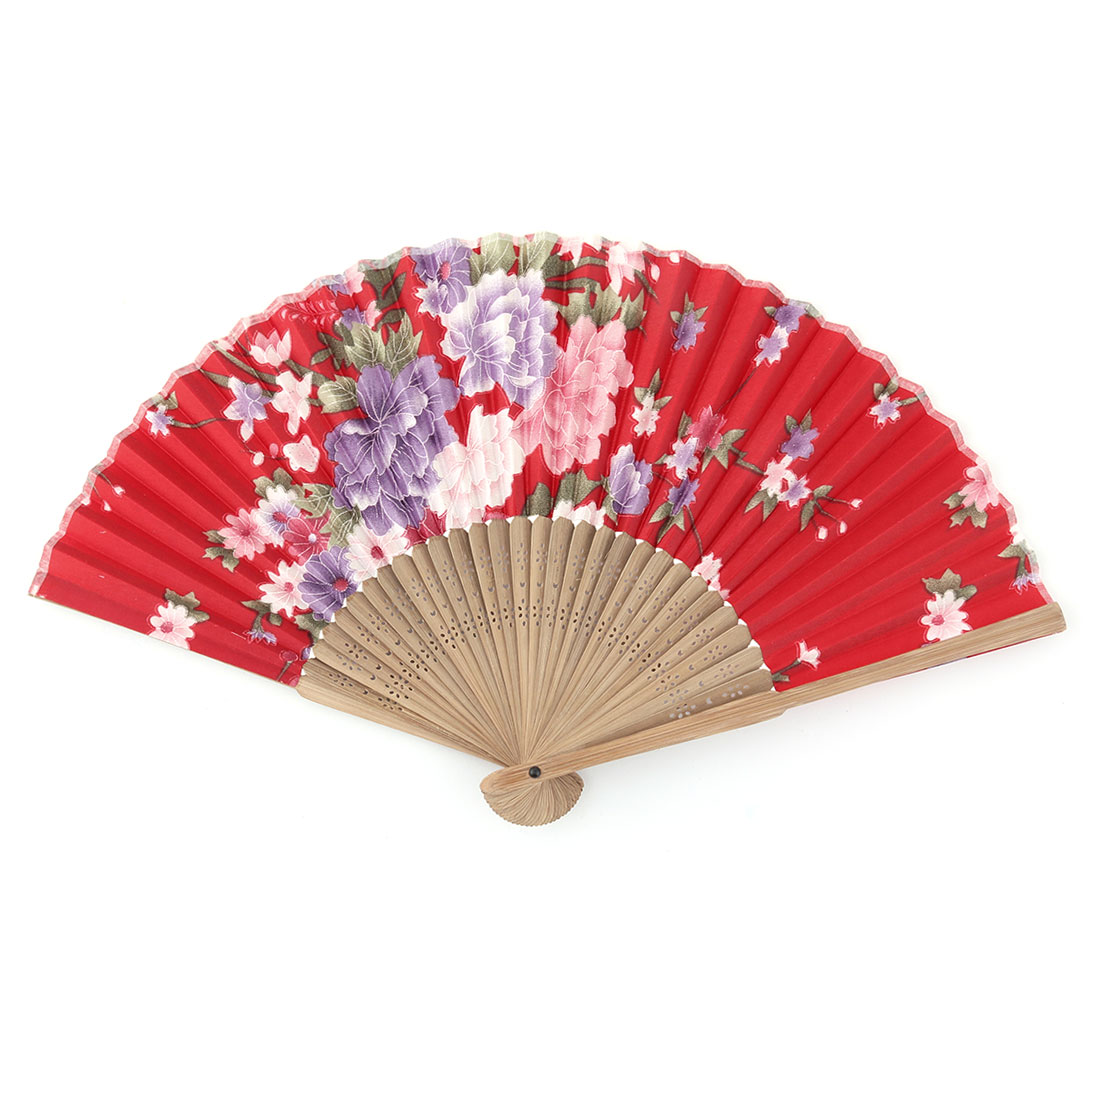 Summer Bamboo Frame Flower Pattern Decor Gift Folding Cooling Hand Fan Colorful